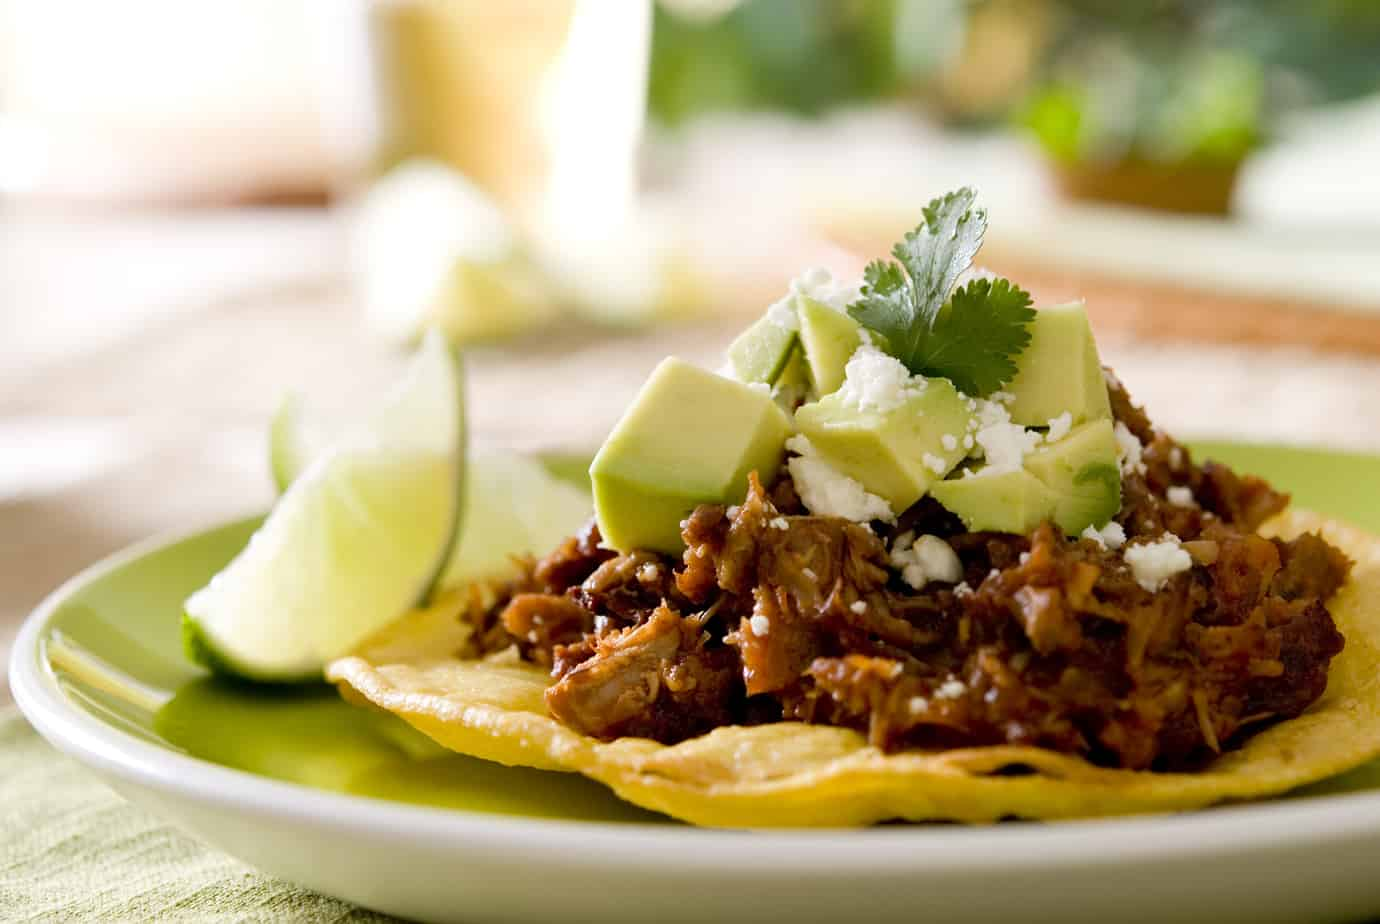 spicy beef tostada topped with guacamole and cilantro with cotija cheese